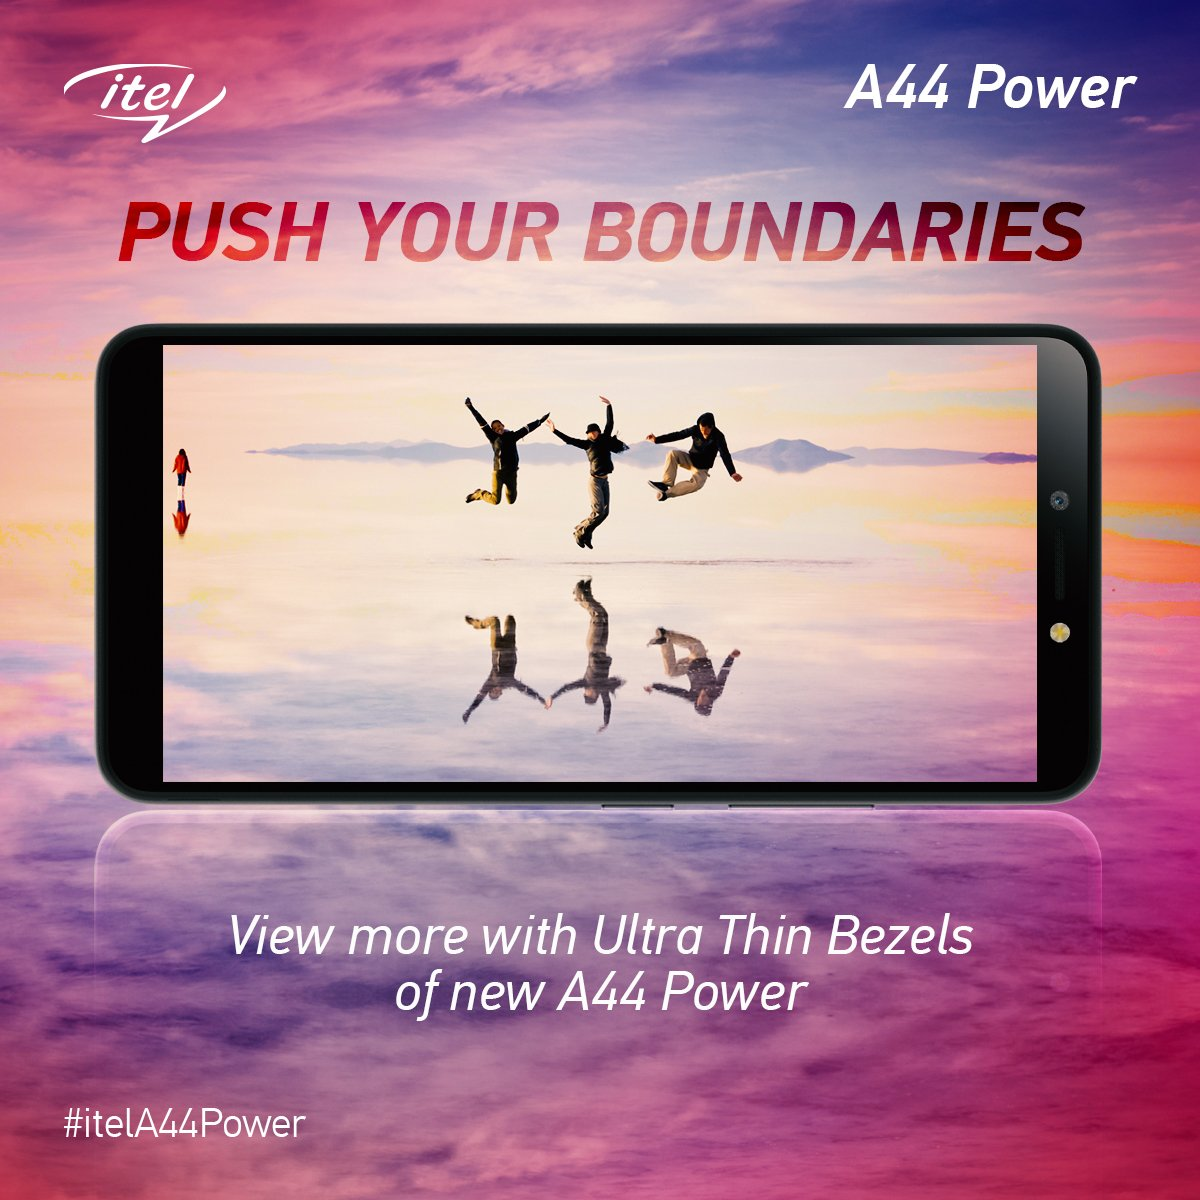 With the ultra-thin bezels of the new itel A44 Power, enjoy a high-quality viewing experience like never before! #itelA44Power #itelcelebrates4cr